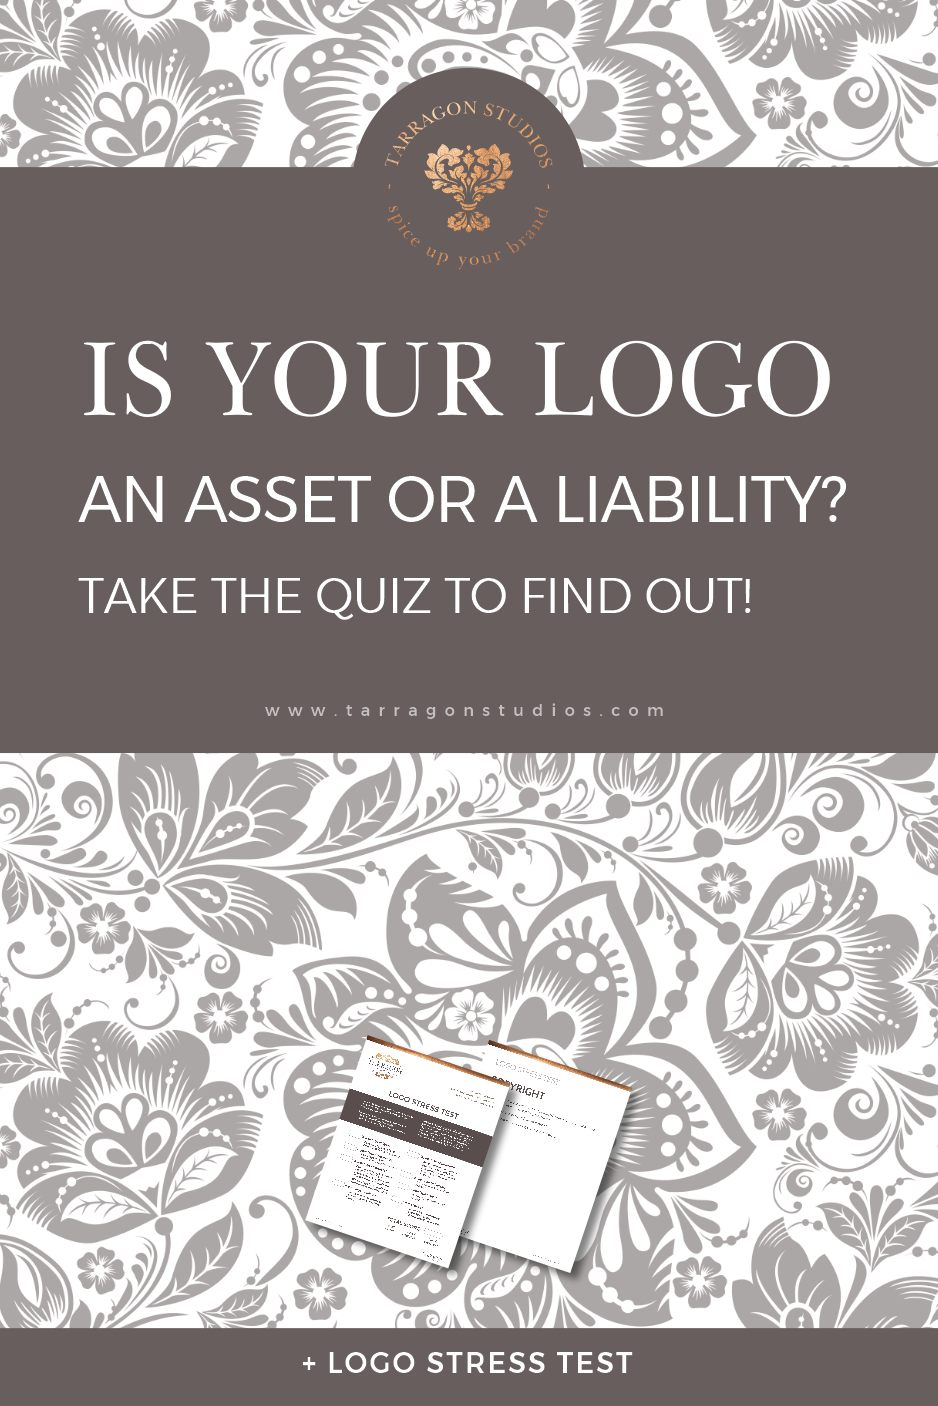 Is Your Logo an Asset or a Liability? Take the Test to Find Out! By Samantha Tarragon Studios